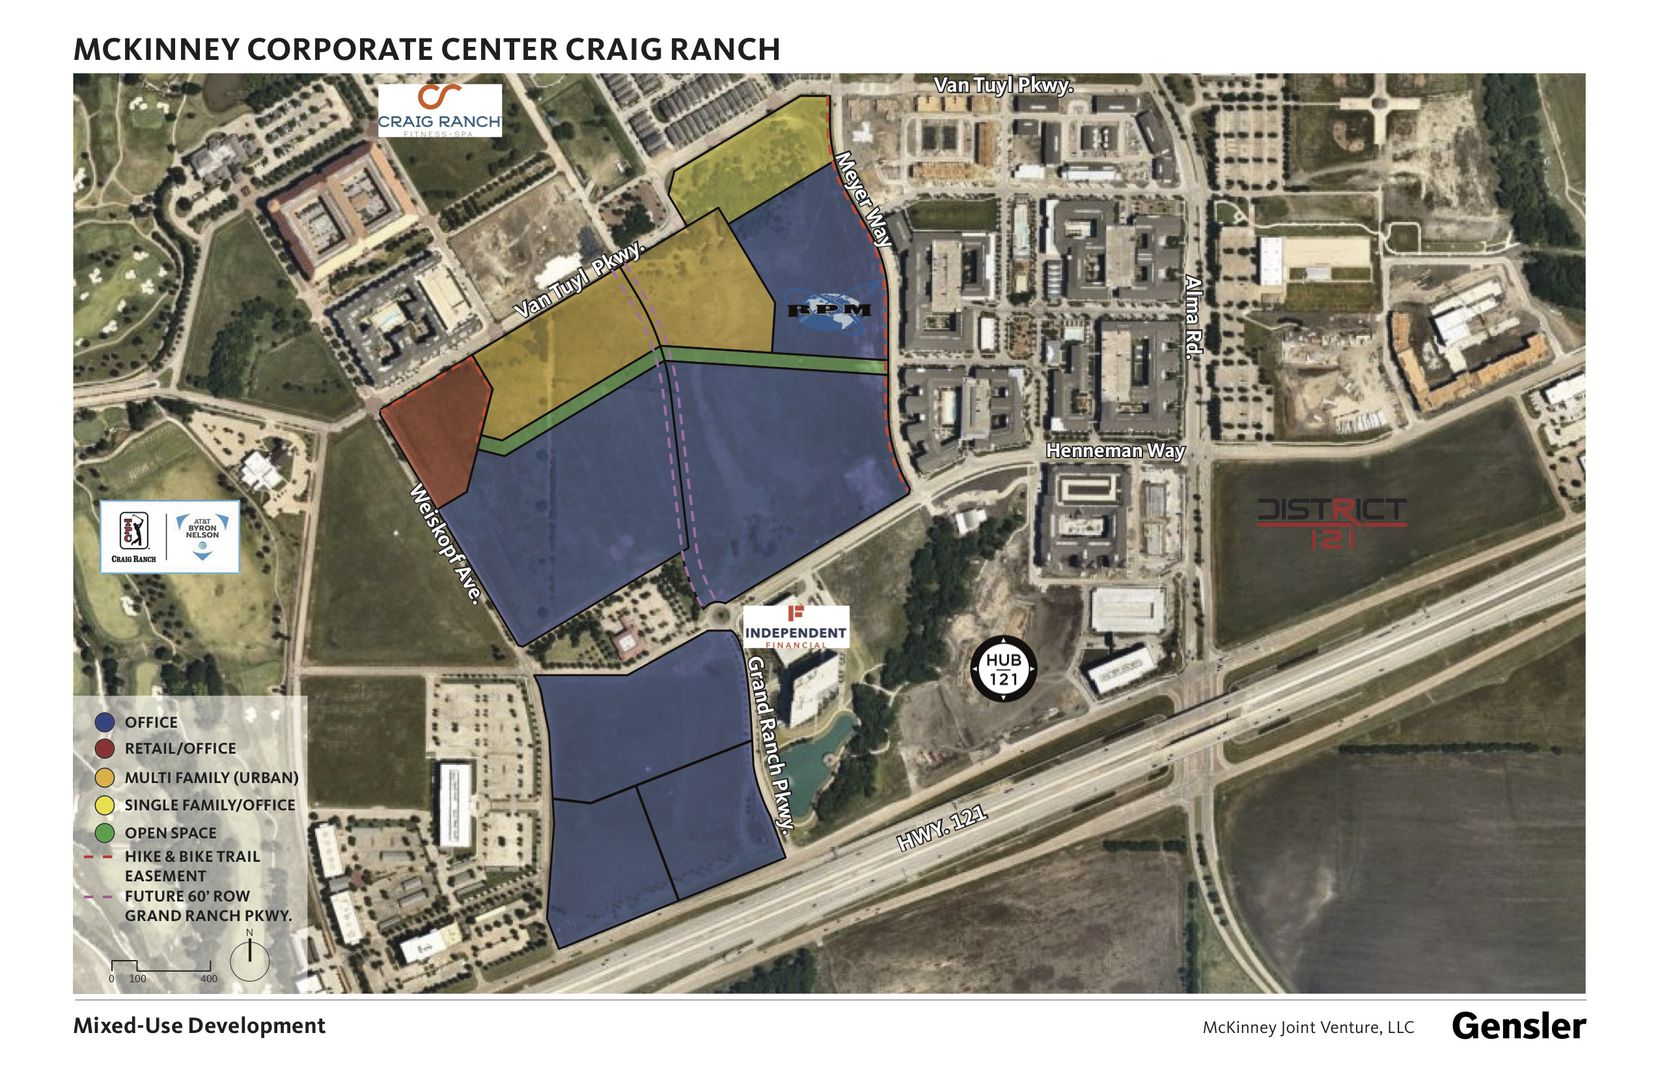 The 80-acre mixed-use project north of S.H. 121 will include commercial and residential buildings.